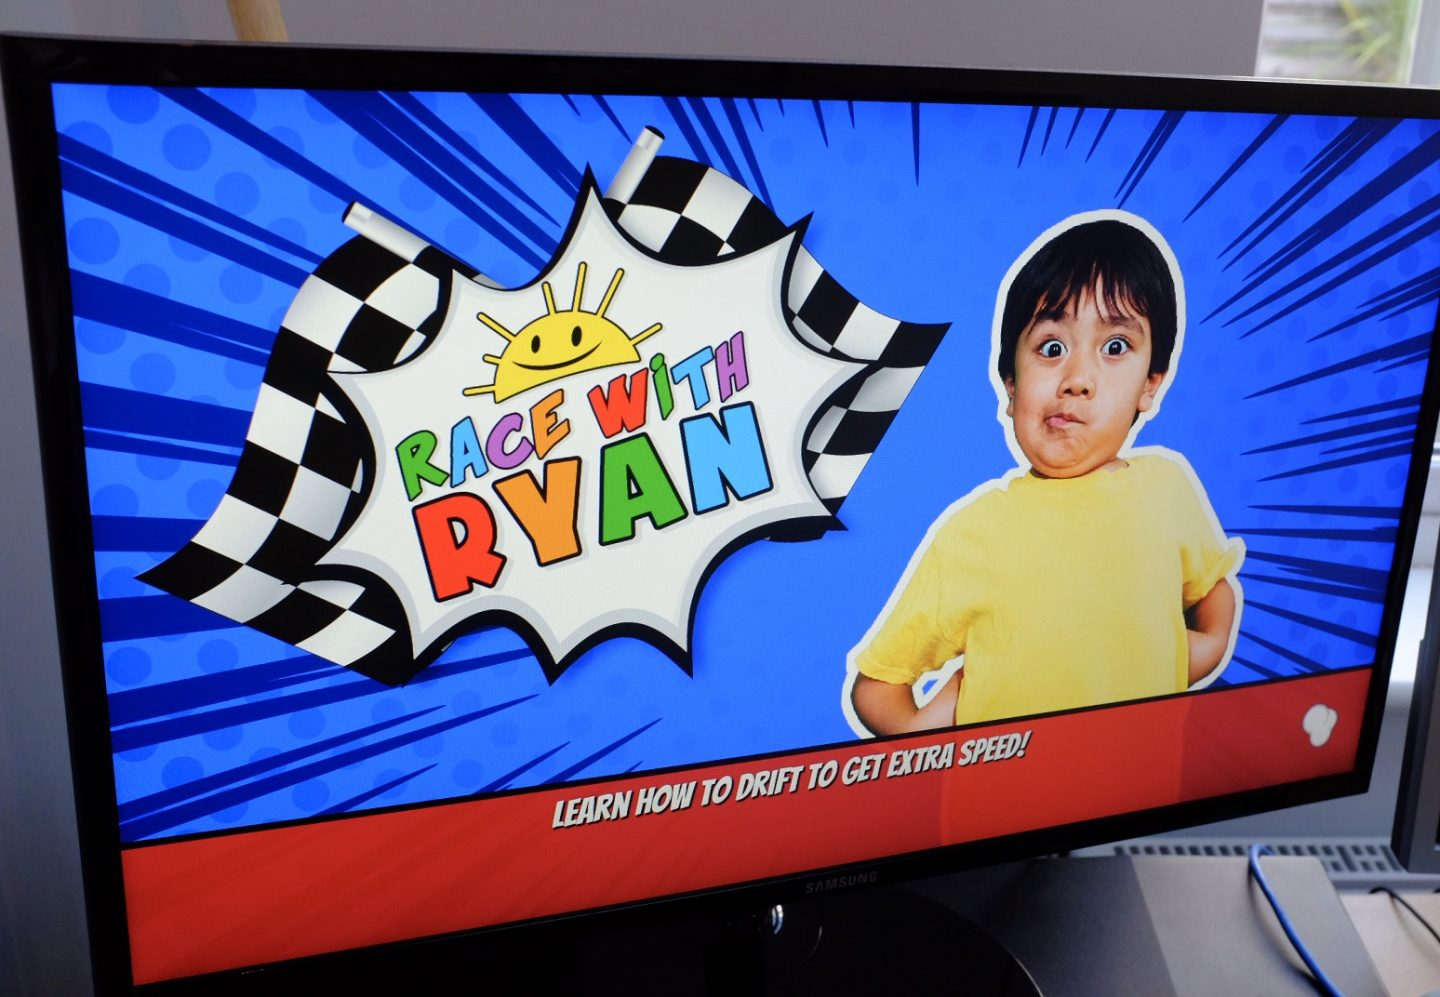 Race with Ryan home screen for PC